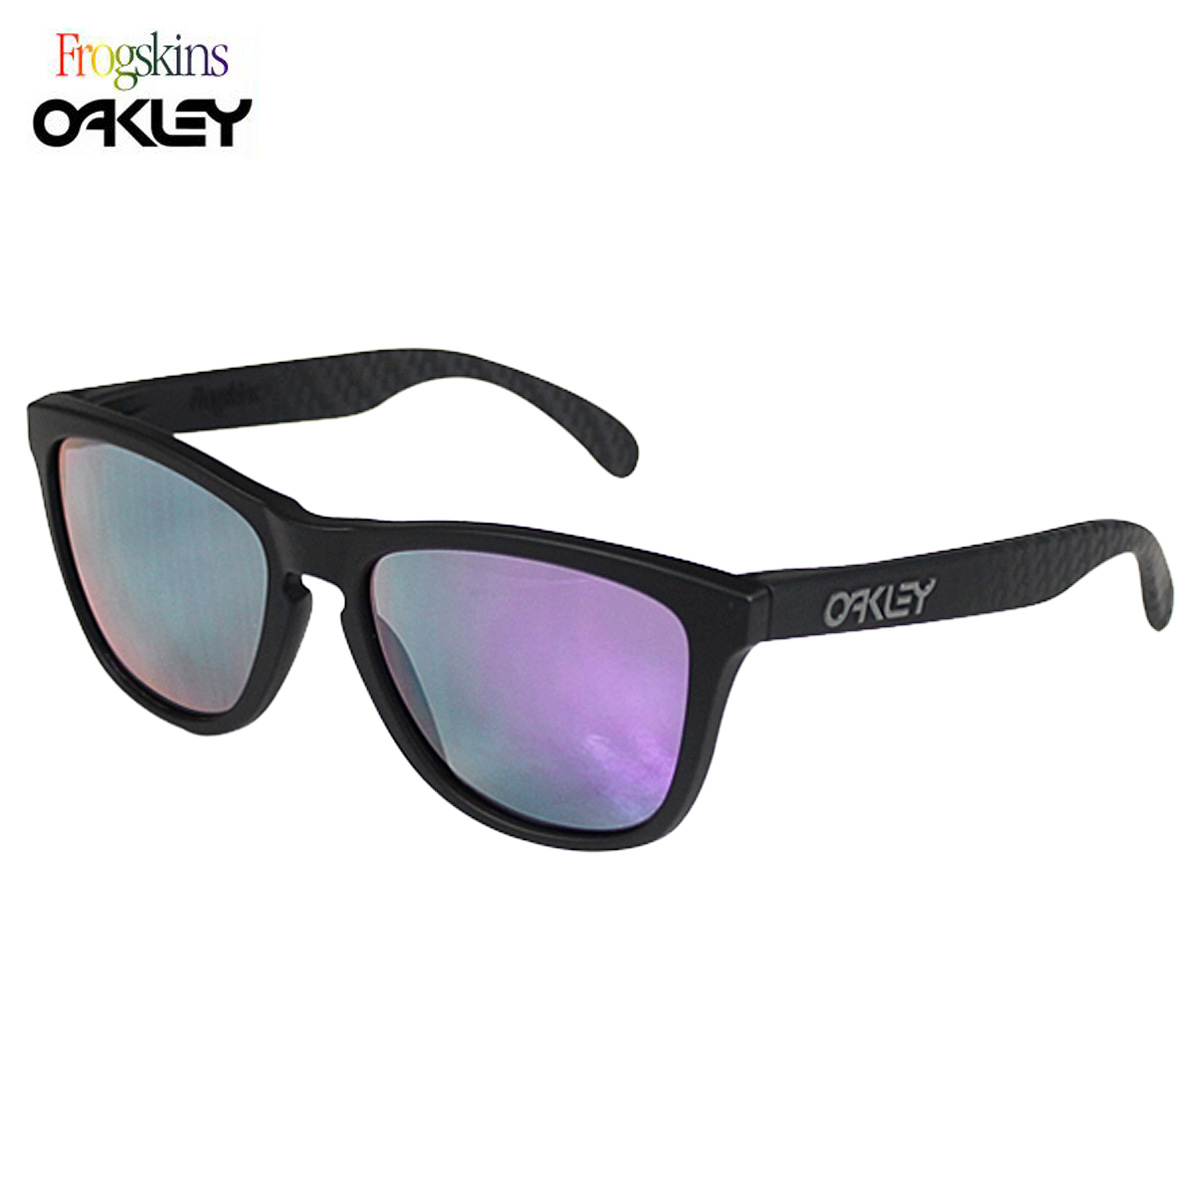 ffb1adcb48 ... australia oakley frogskins soft touch sunglasses style 24 399. visible  light transmission 15 ultraviolet ray